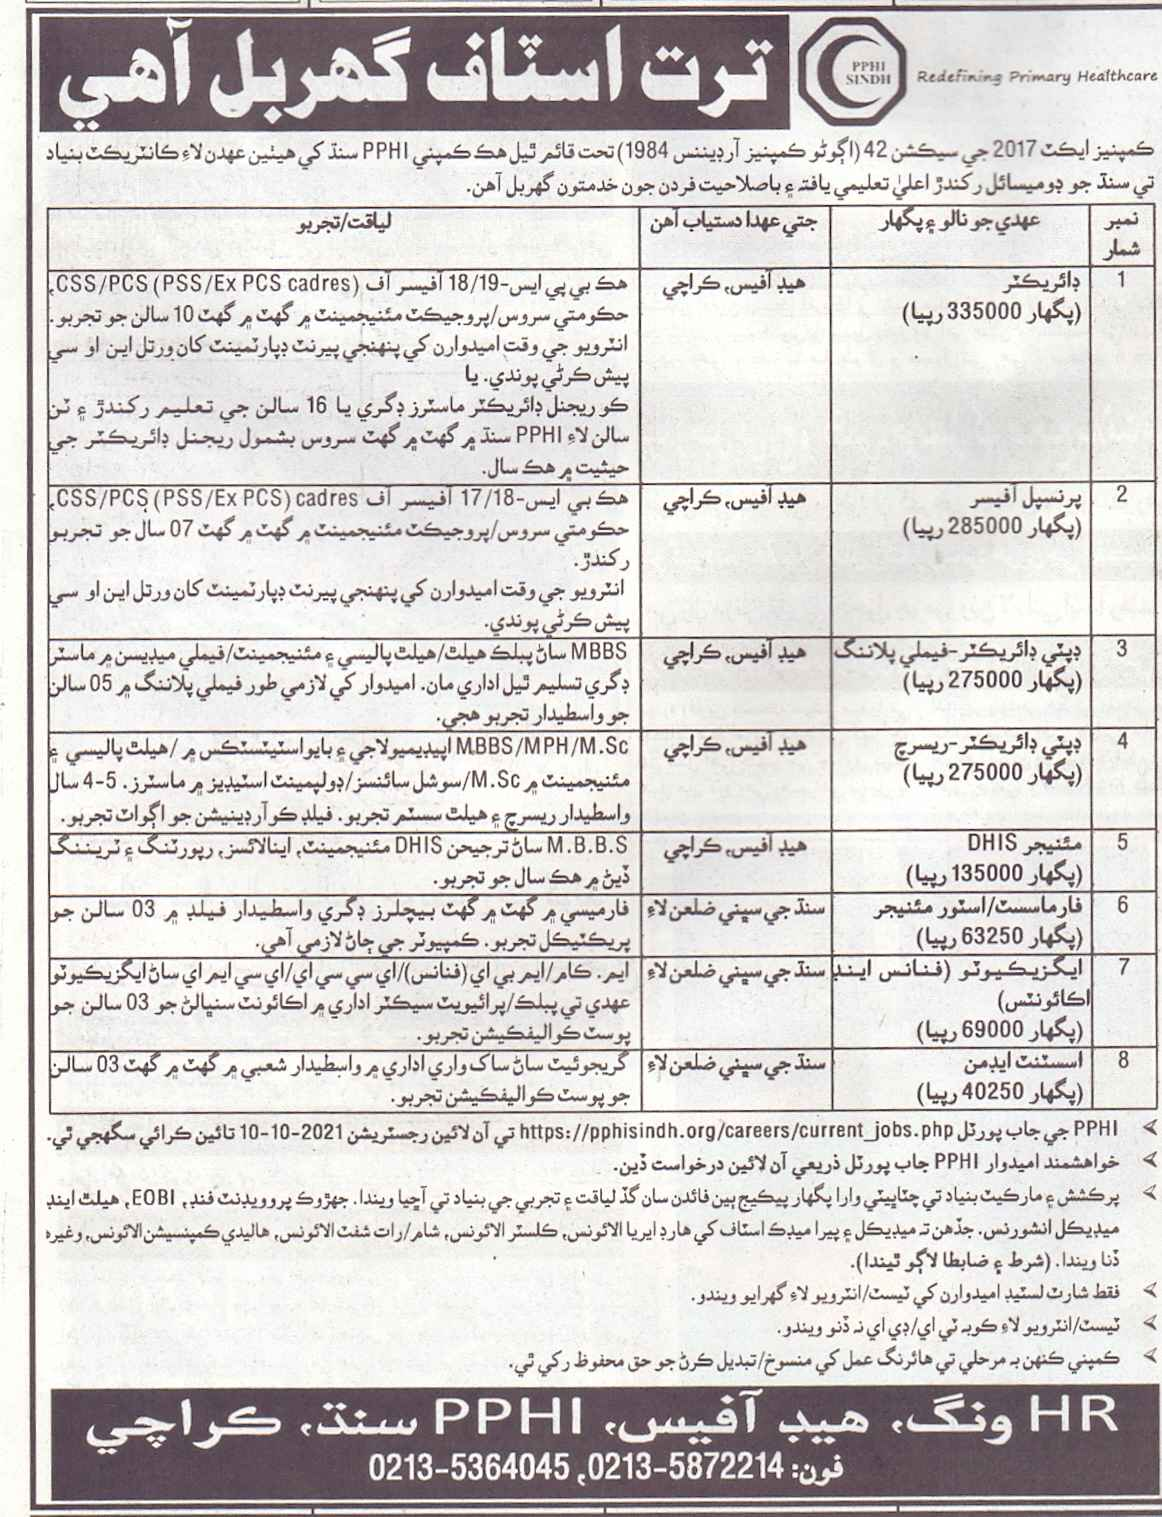 PPHI People's Primary HealthCare Initiatives Sindh Jobs 2021